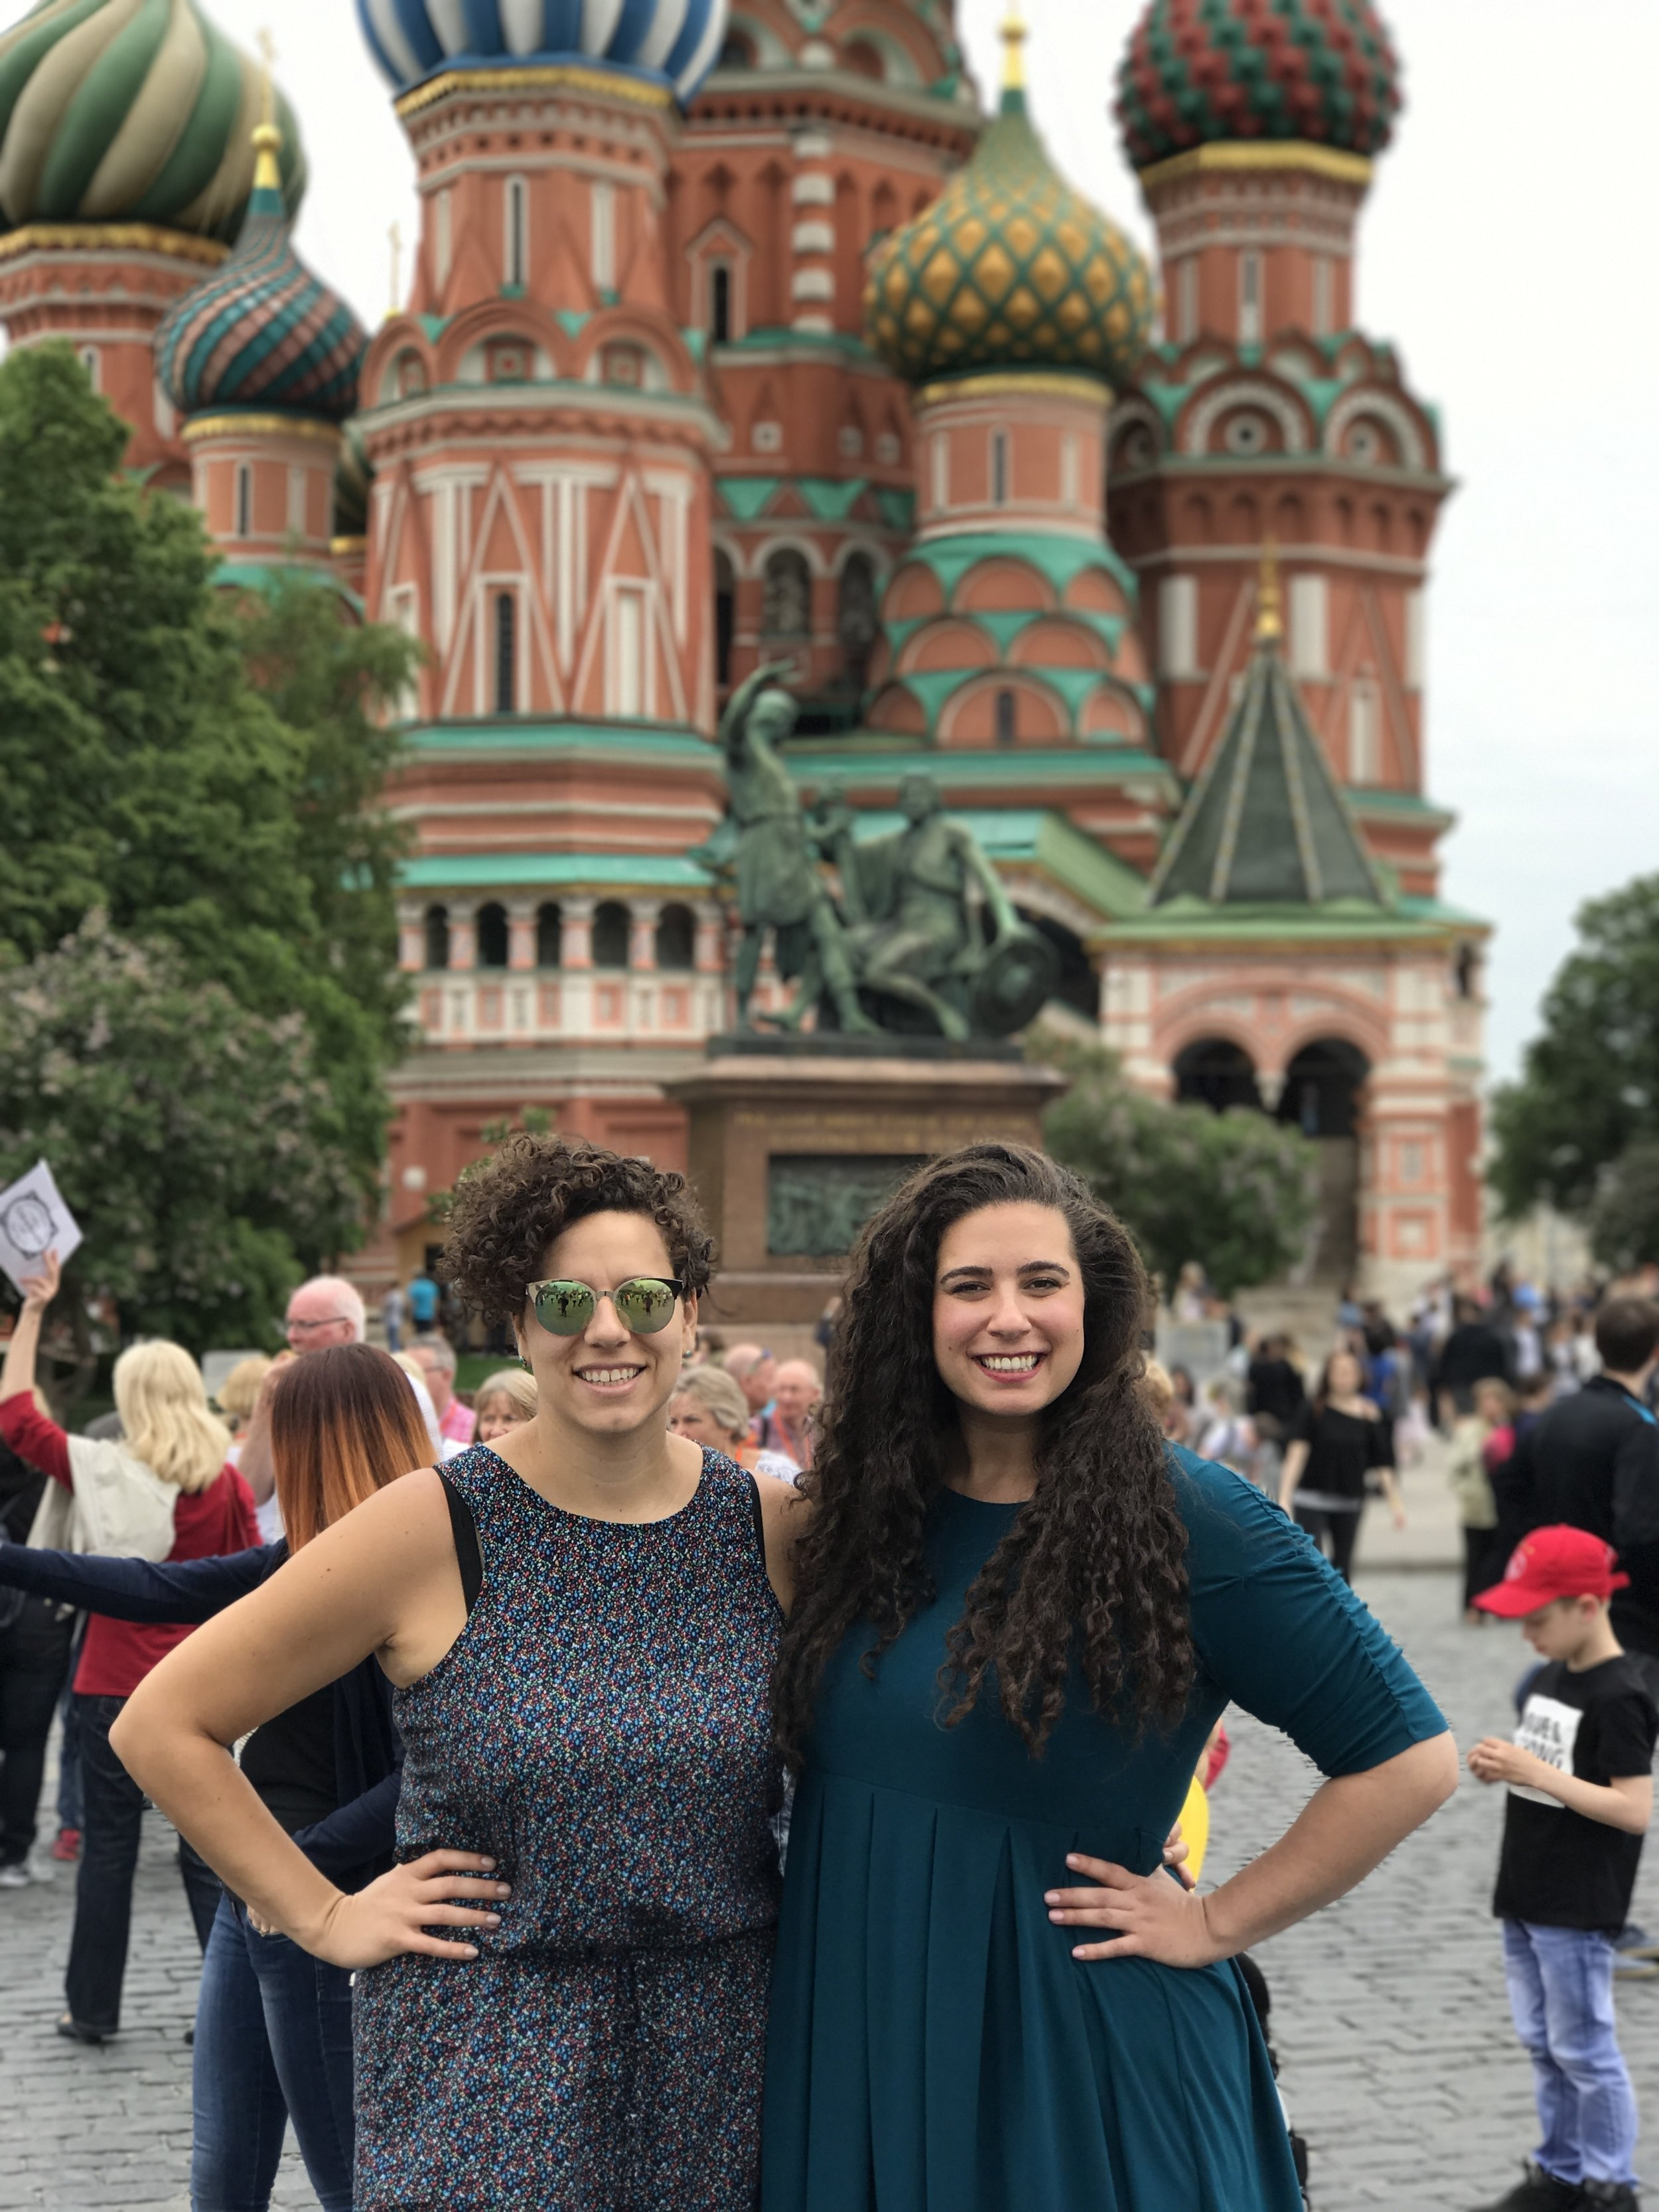 Welcome to our blog!Travel enables us to learn more about ourselves as we navigate the world around us. By sharing our experiences as a same-sex couple, we aspire to inspire others in the LGBTQ+ community to grow by exploring their world. Enjoy!